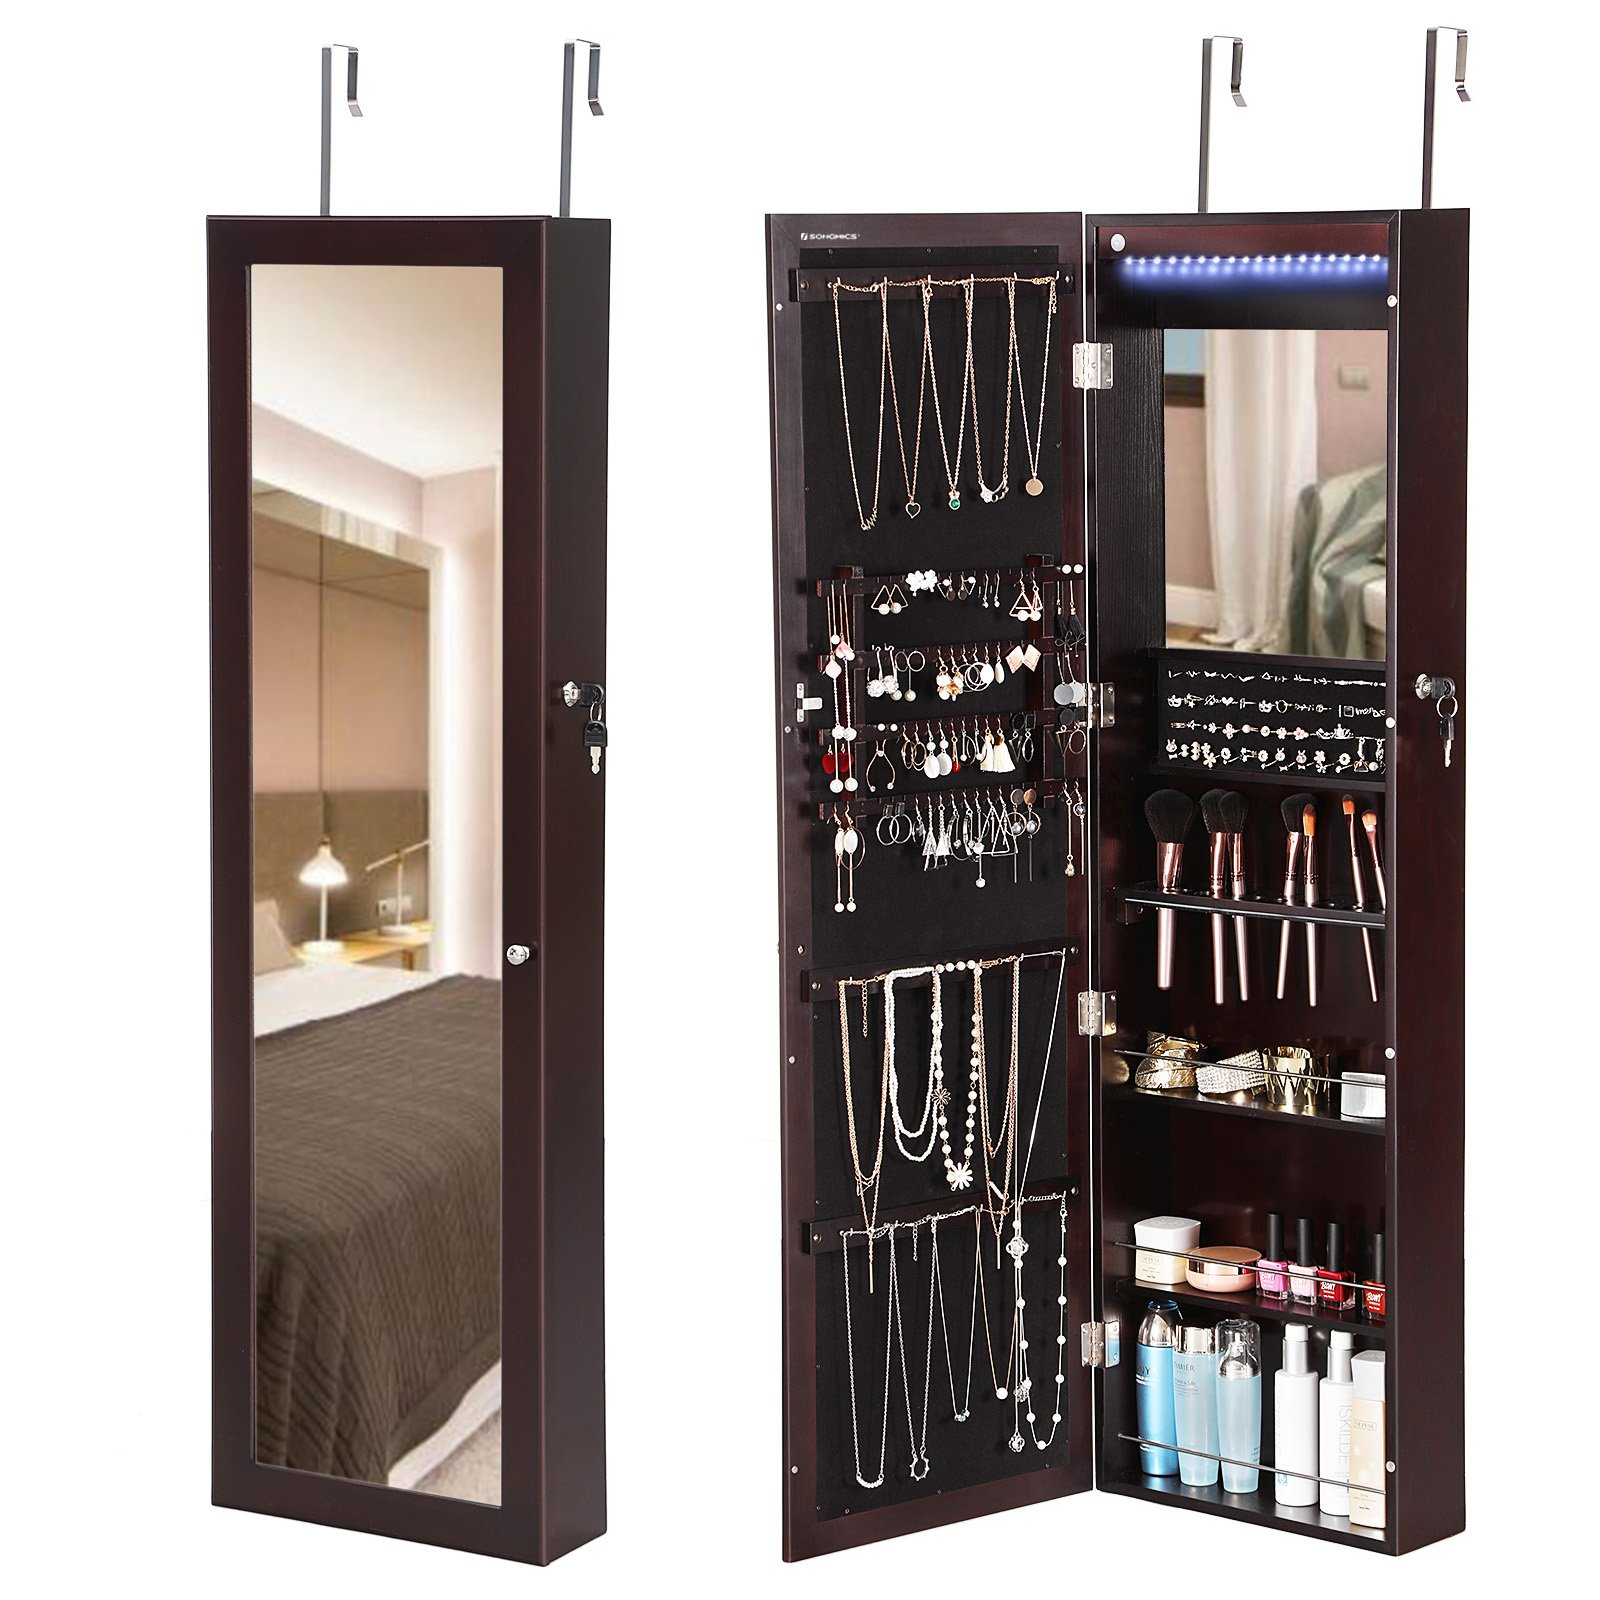 SONGMICS 18 LEDs Mirrored Jewelry Cabinet Lockable Wall Door Mount Makeup Armoire Organizer with 13 Brush Holders and Inside Mirror Brown UJJC85K